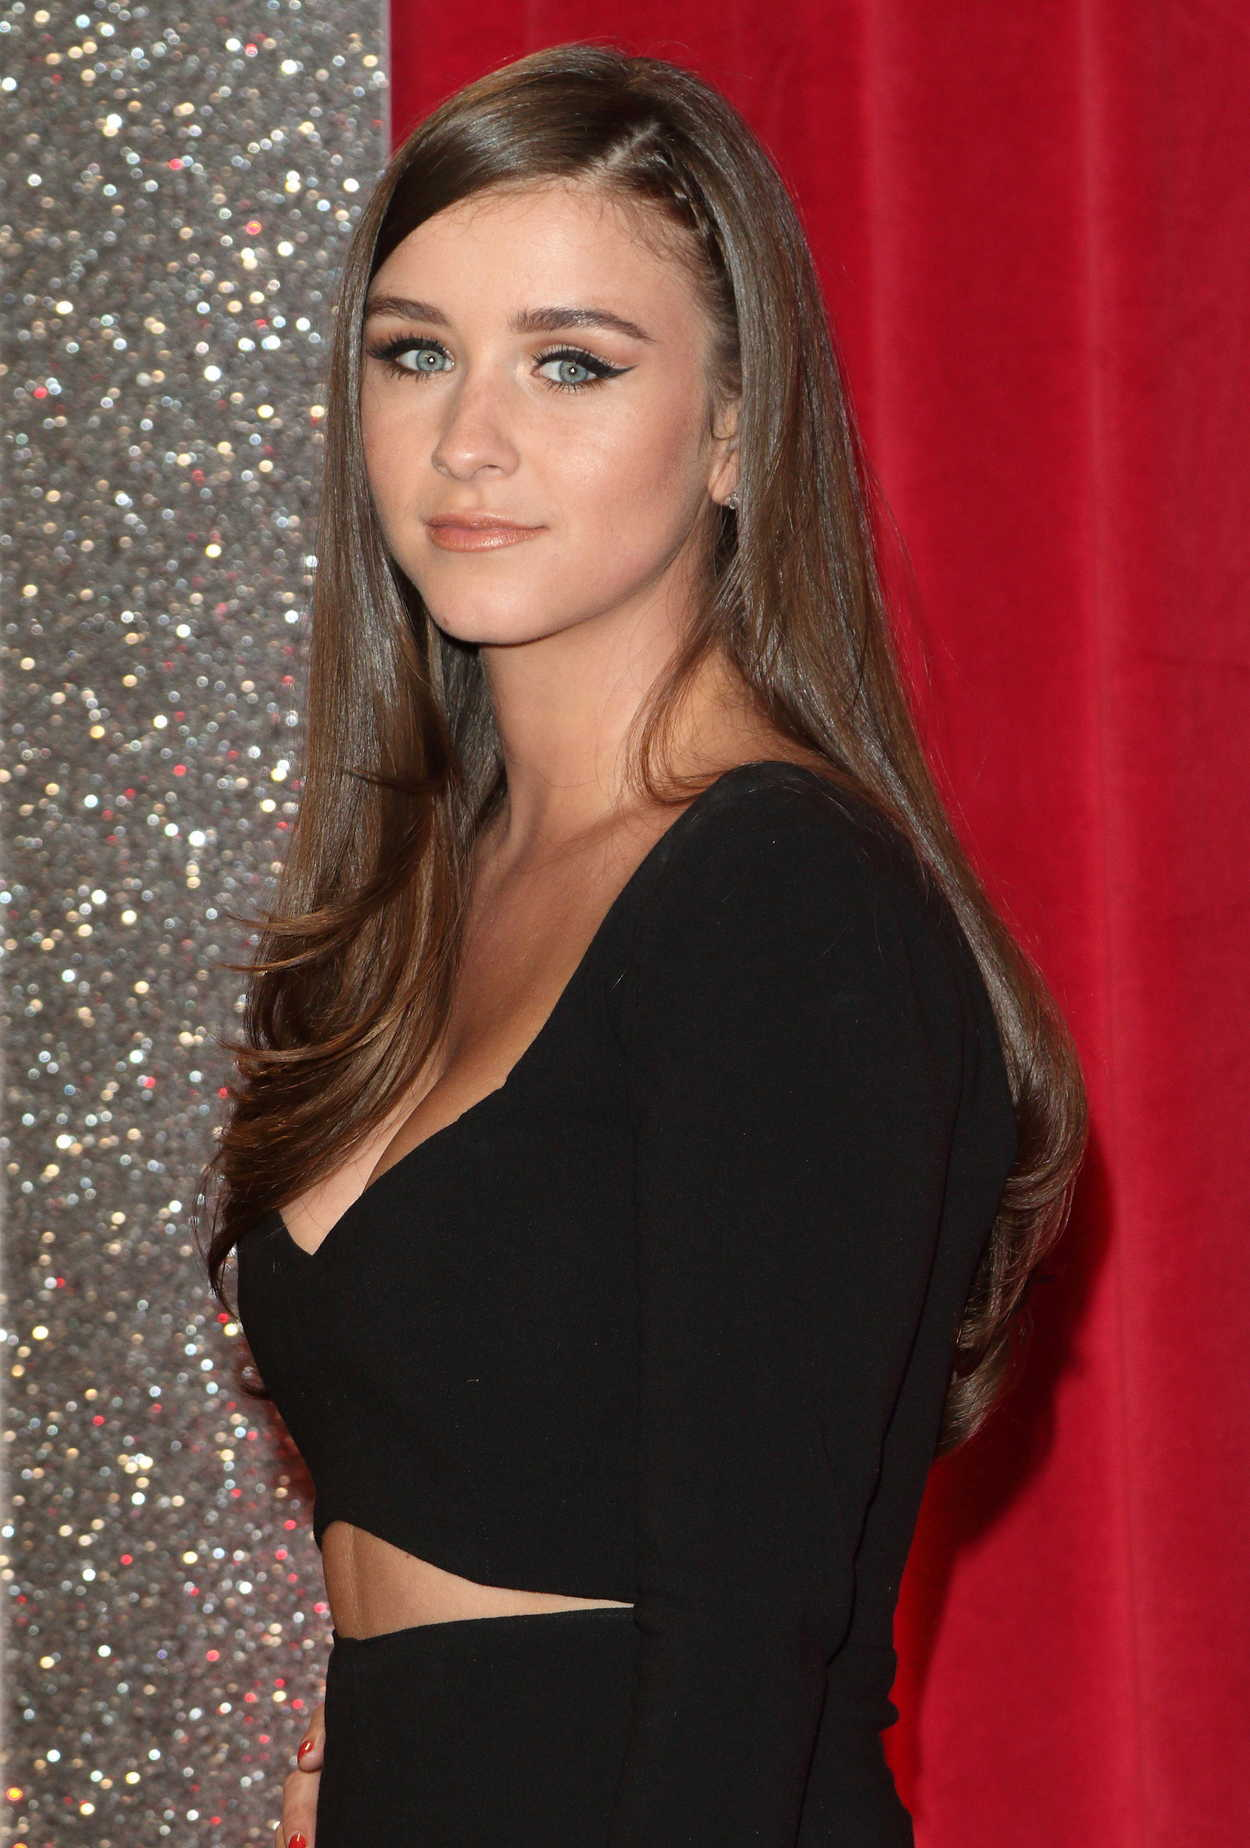 Brooke Vincent naked (76 pictures), young Porno, Instagram, in bikini 2015